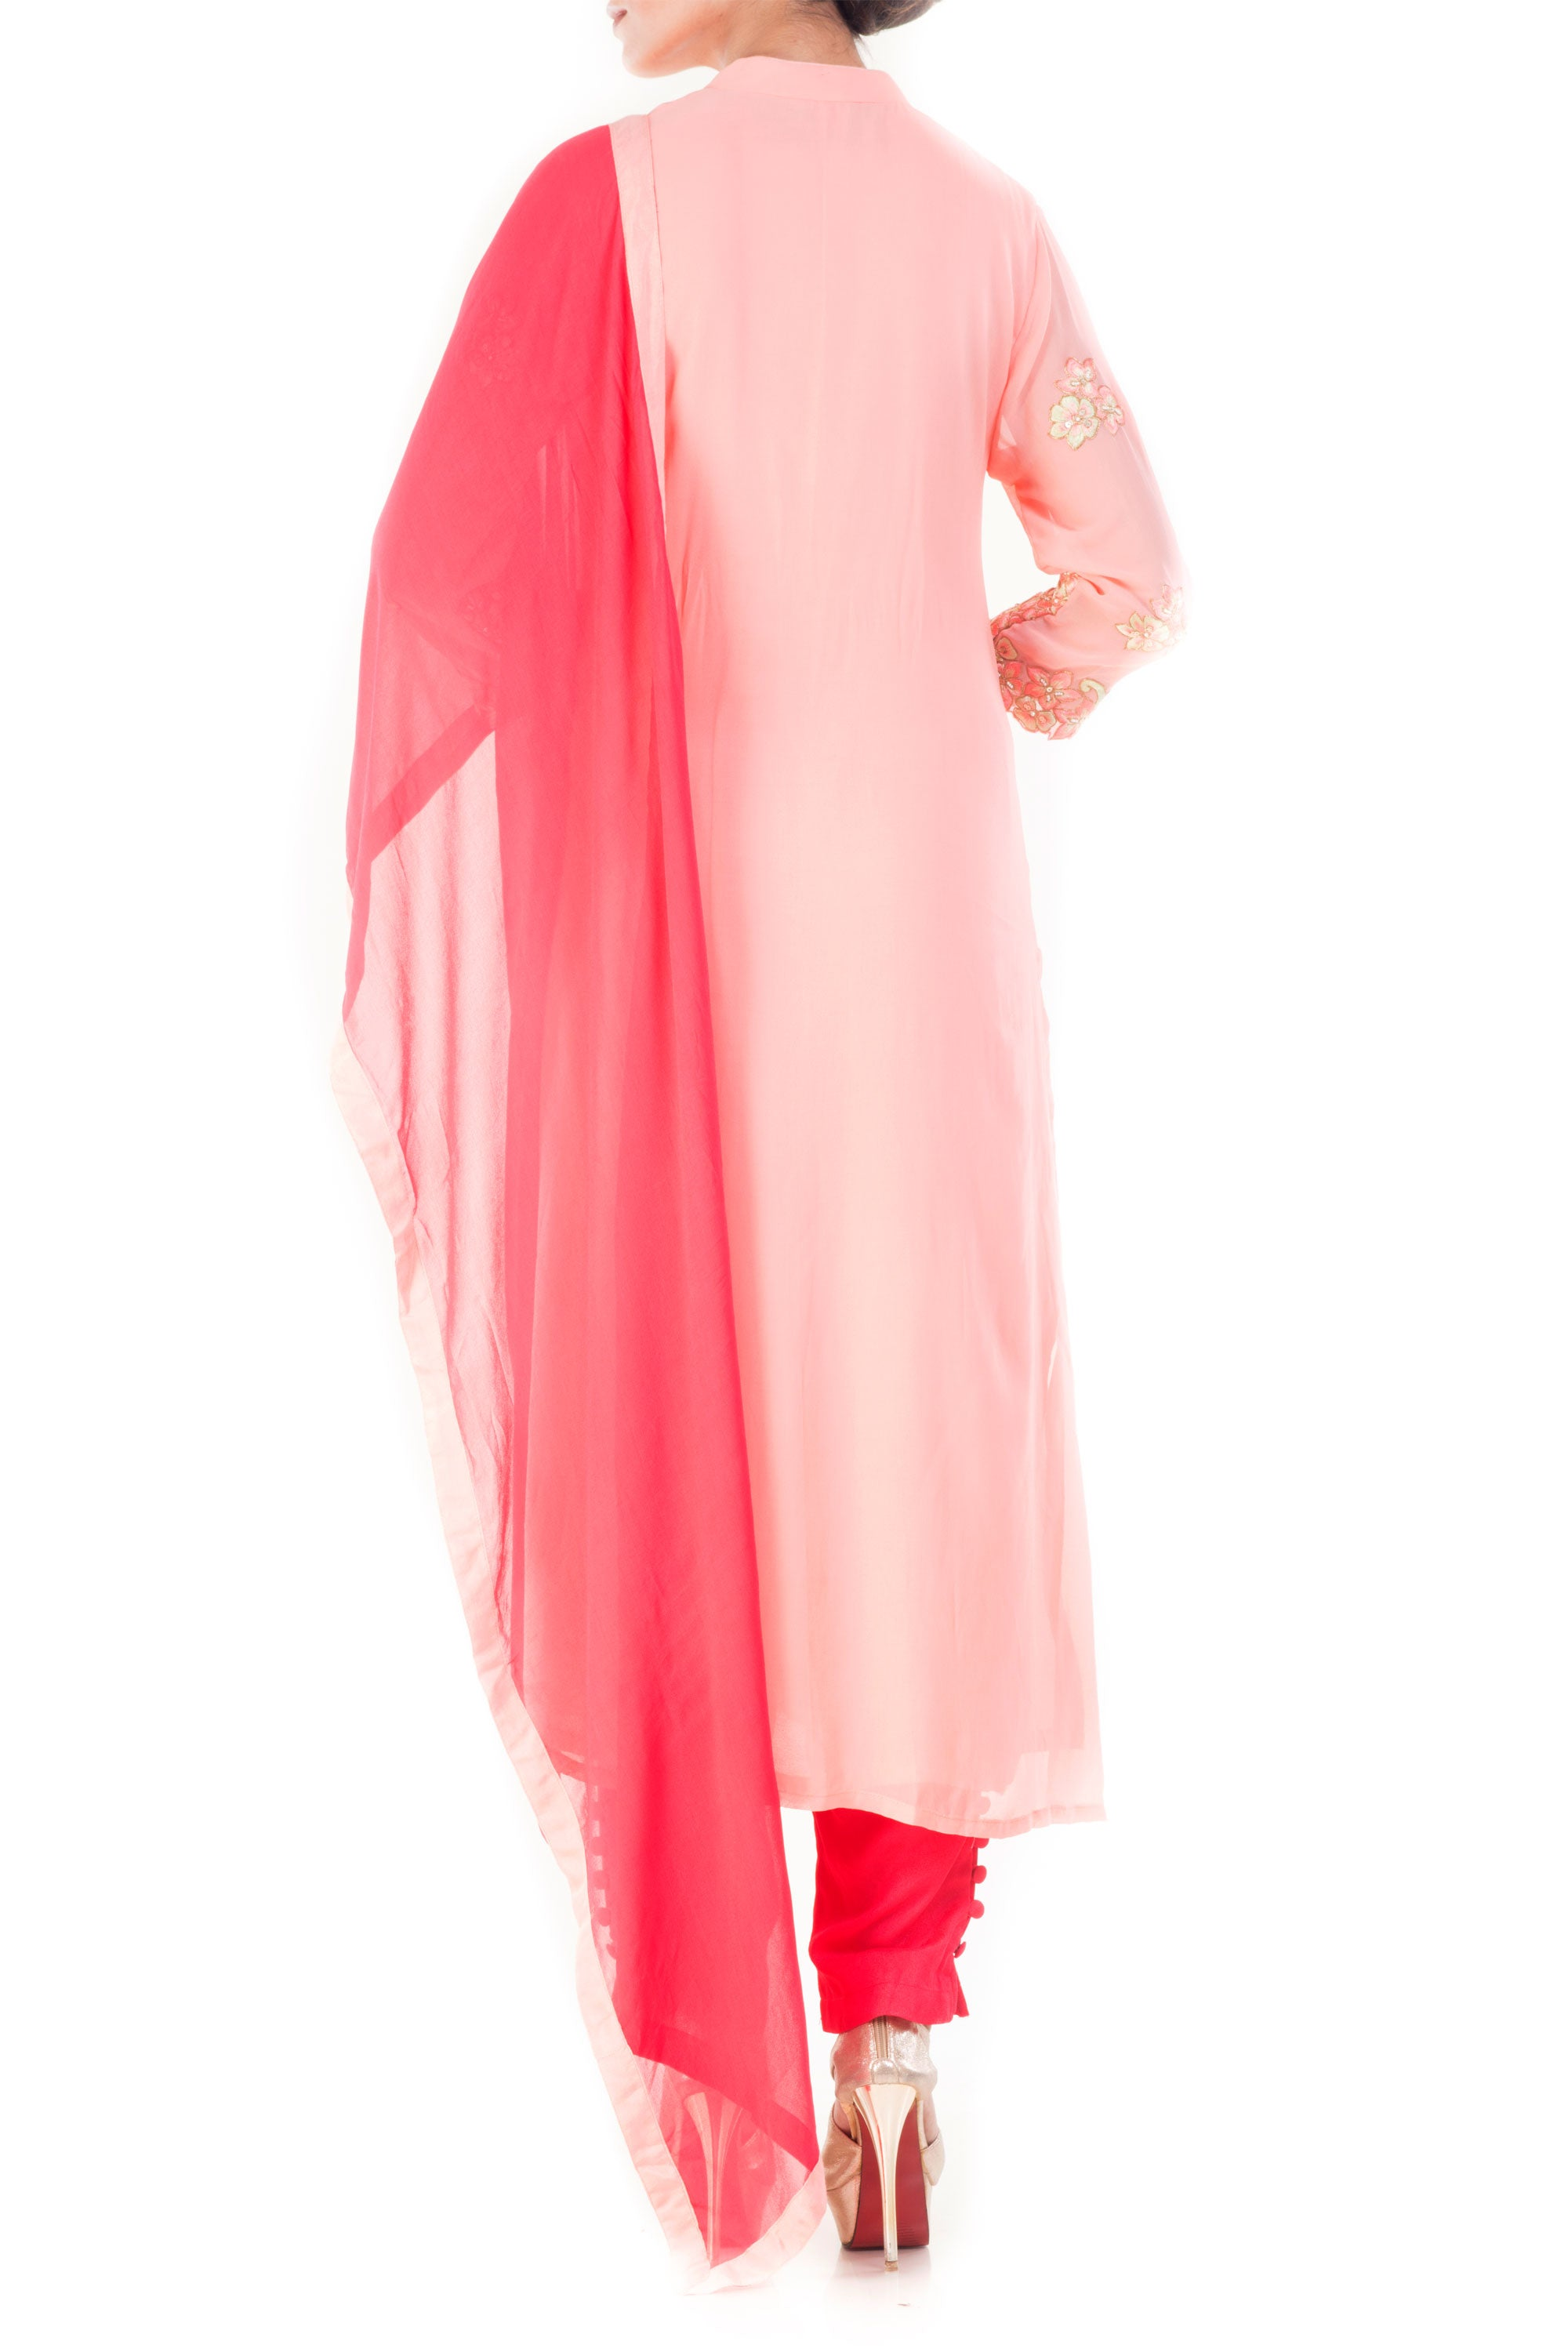 Carnation Pink Salwar Suit Back